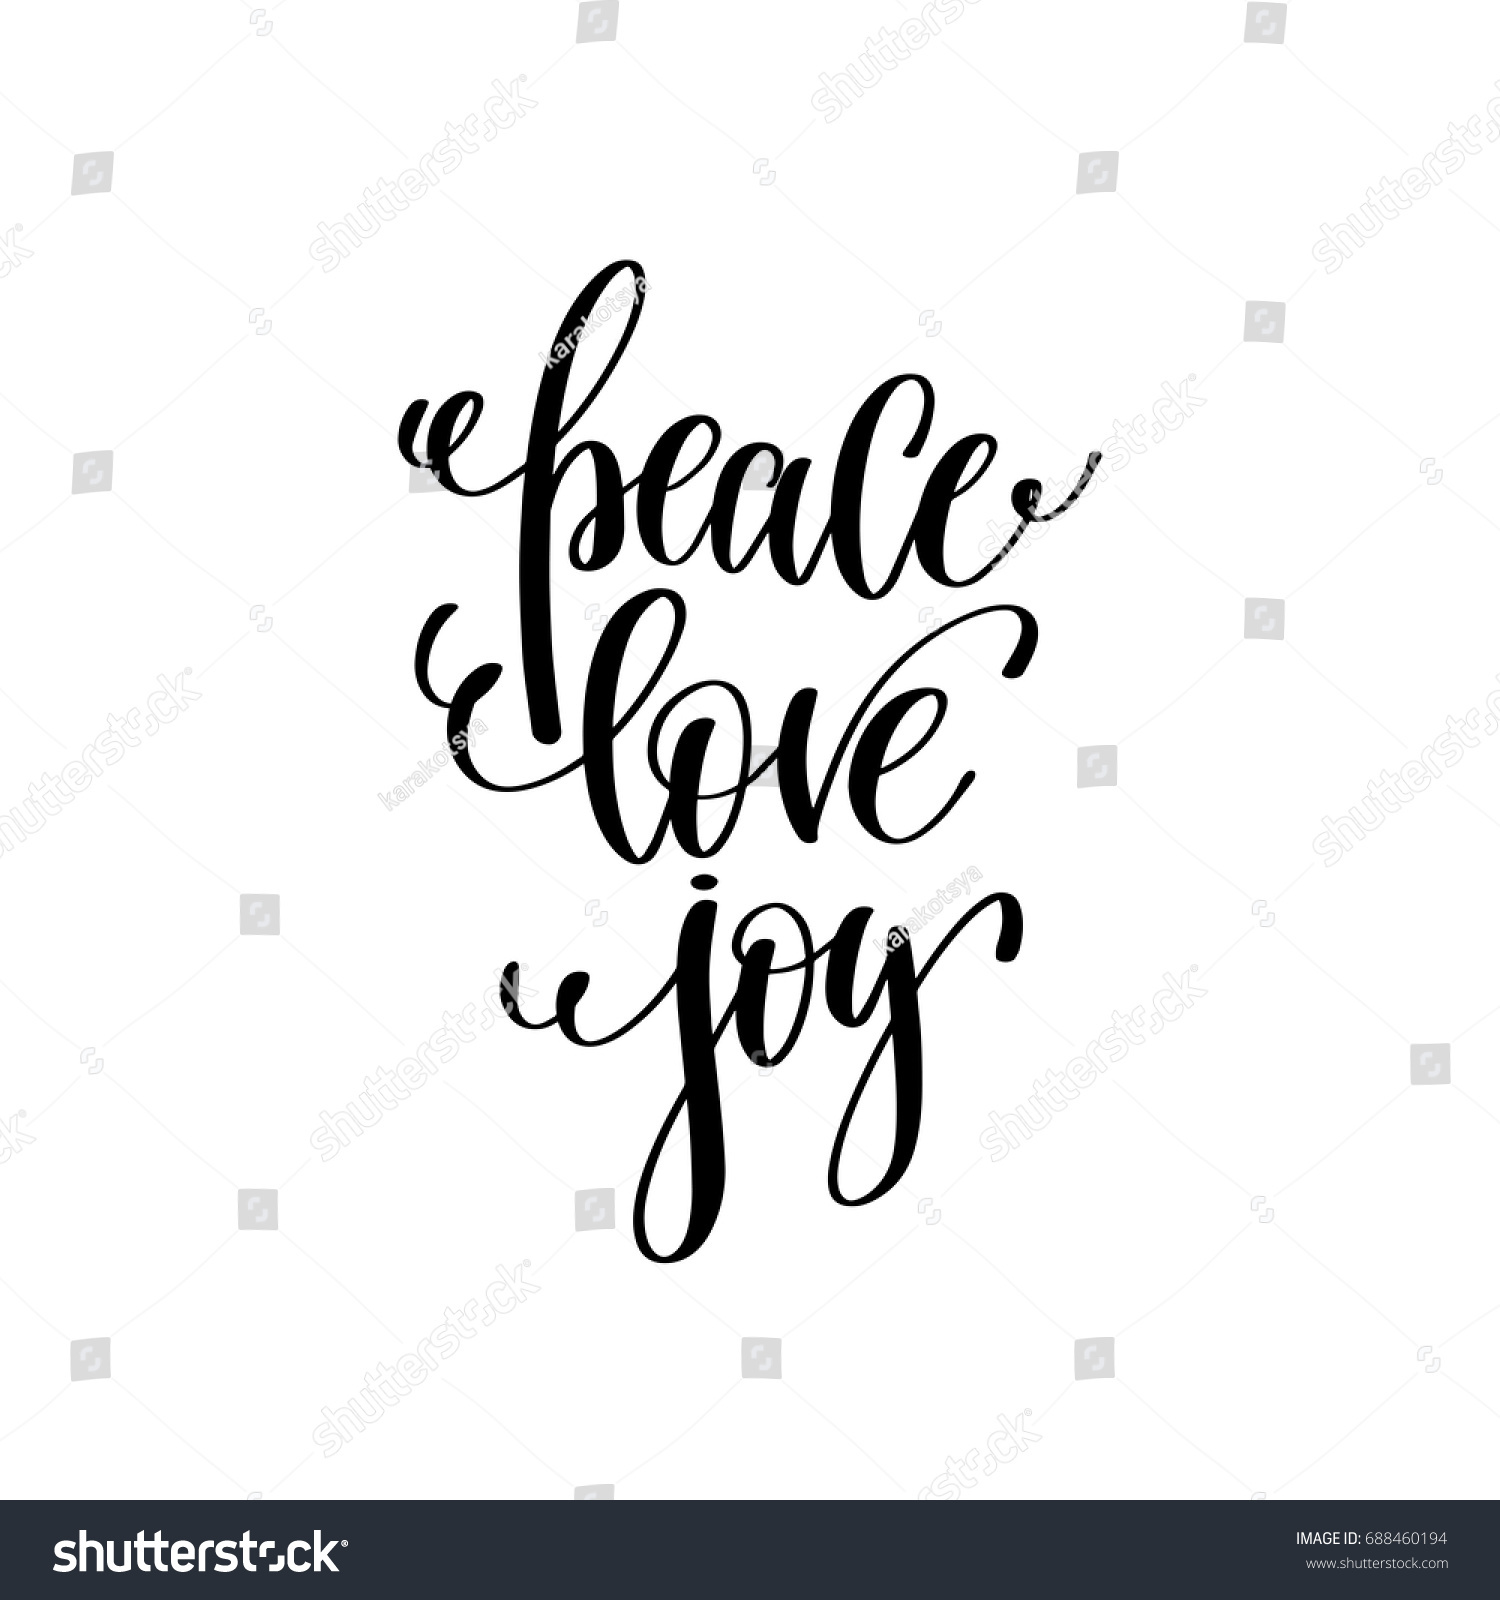 Peace Love Joy Quotes Unique Peace Love Joy Hand Lettering Positive Stock Vector 688460194